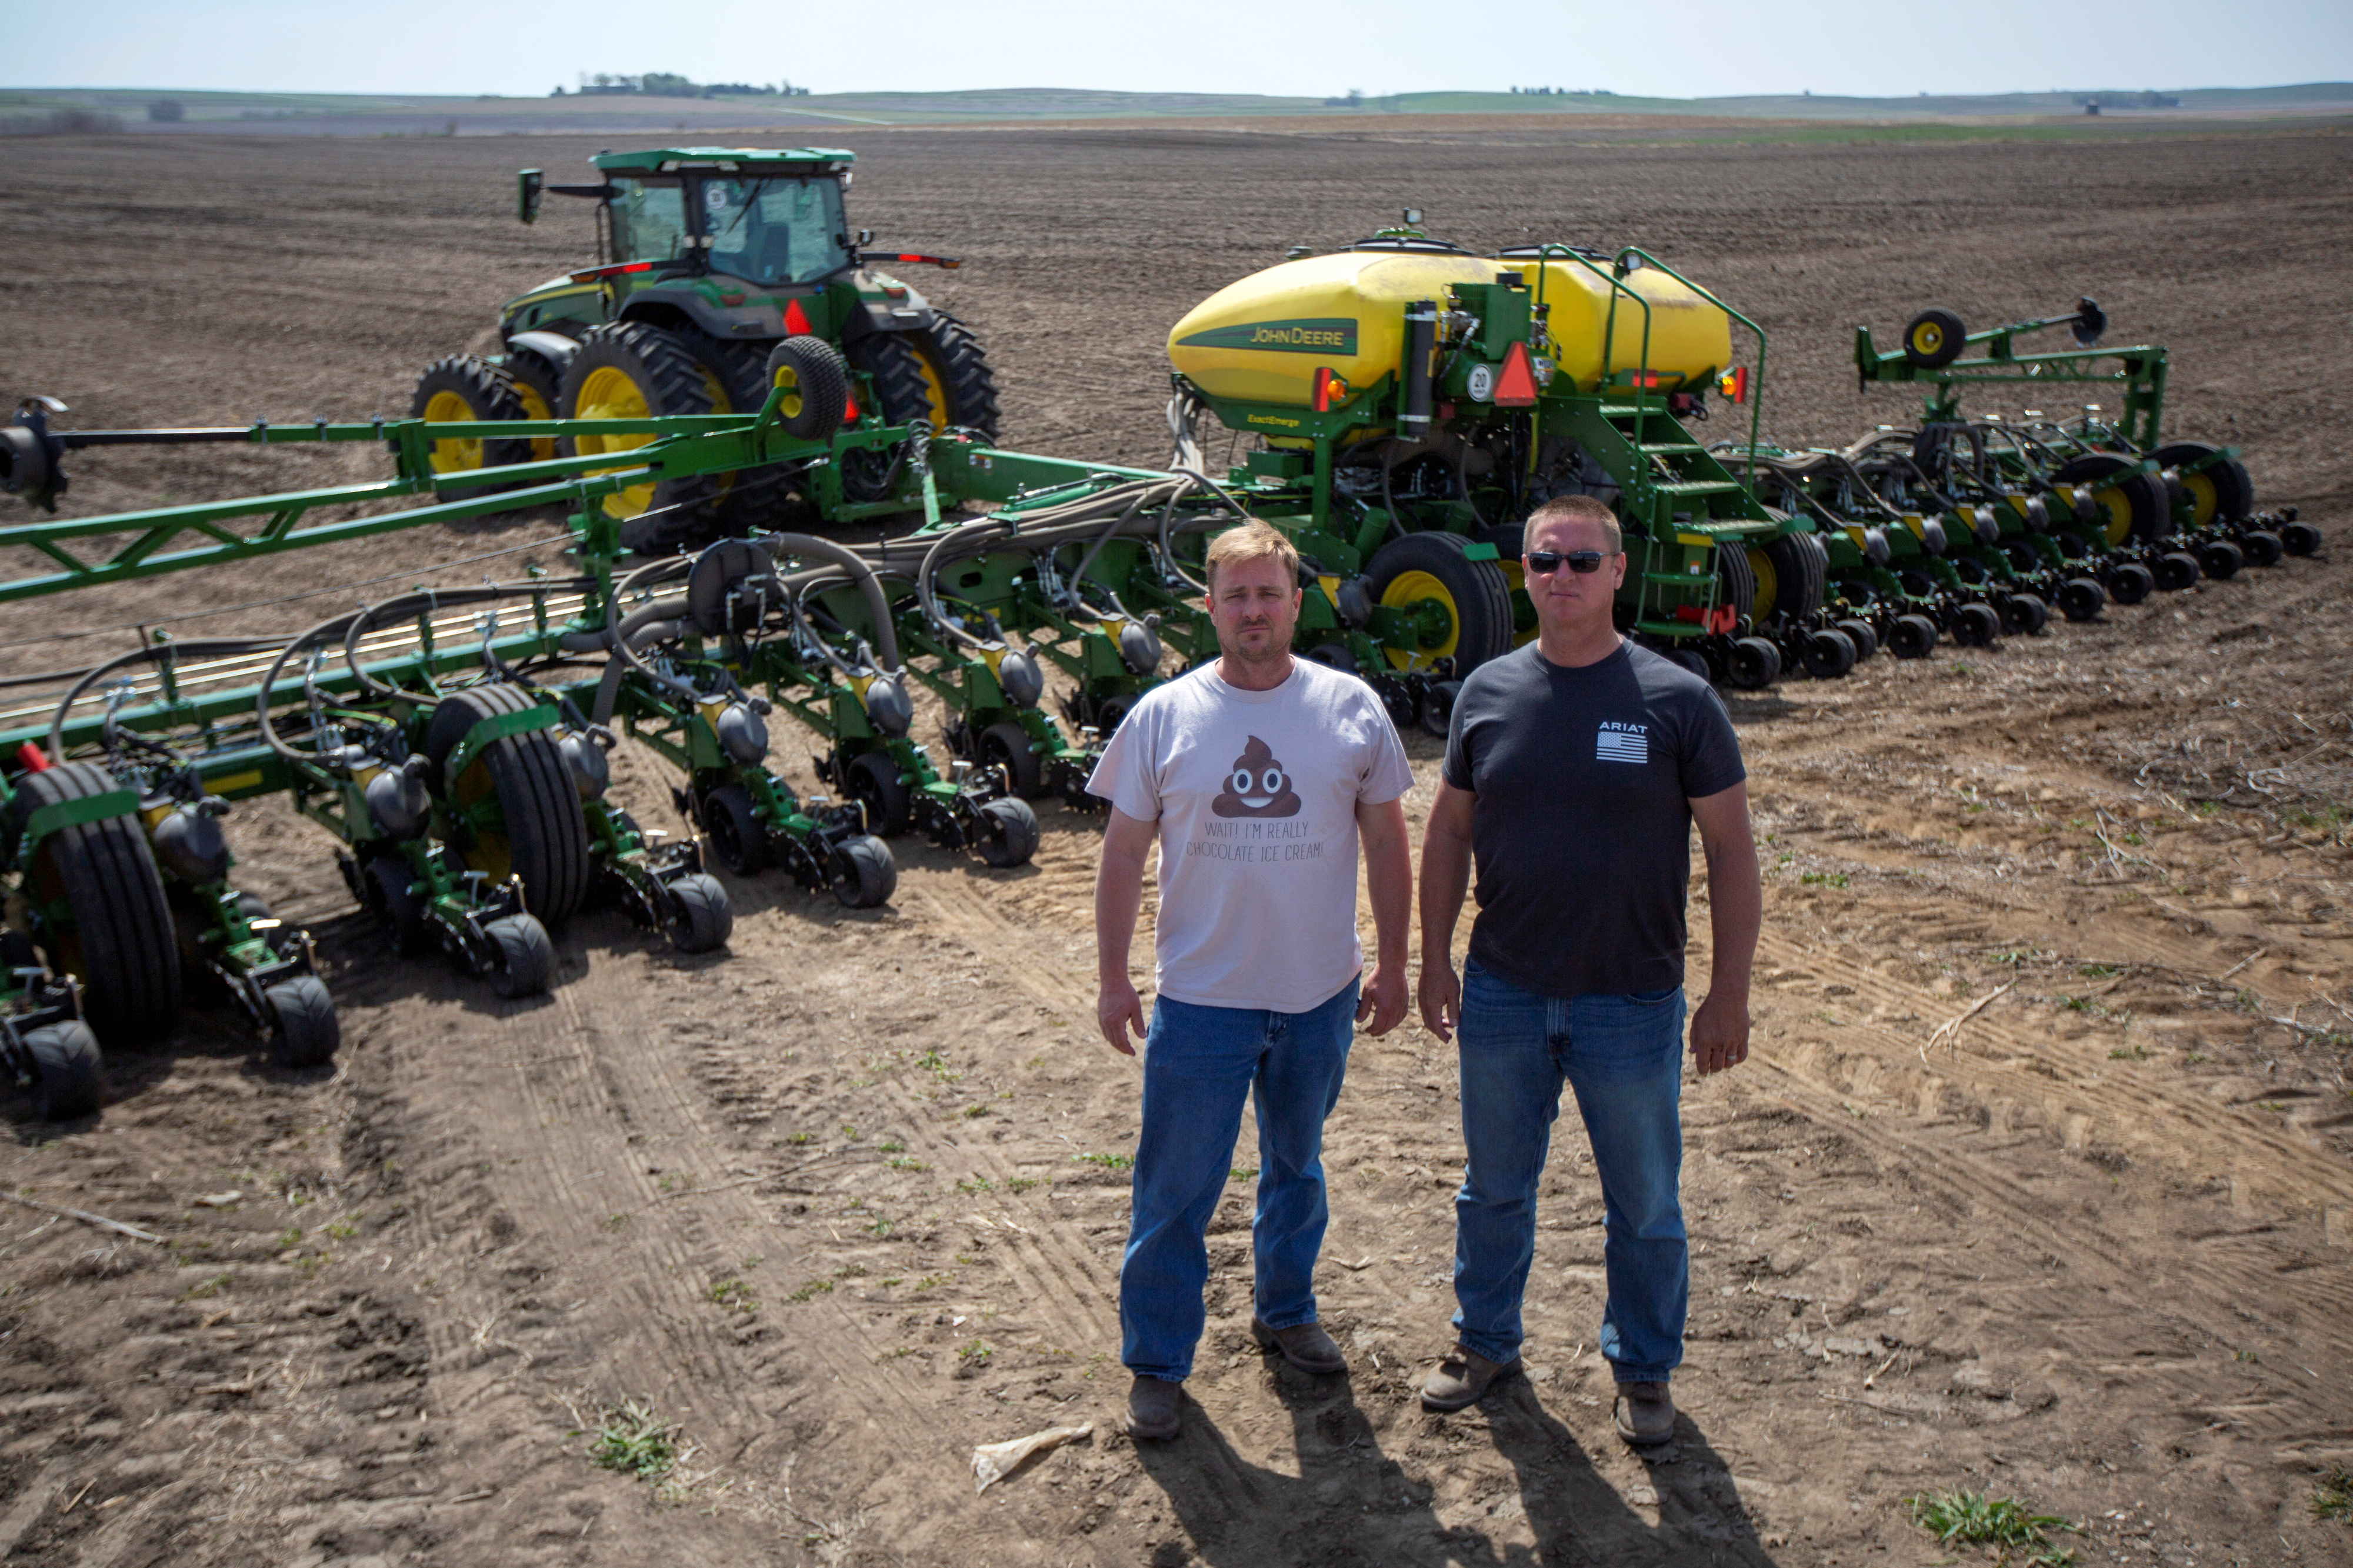 Brothers Chris and Bret Hays with their new tractor and planter in a field at their farm in Malvern, Iowa, U.S., April 27, 2021. REUTERS/Rachel Mummey